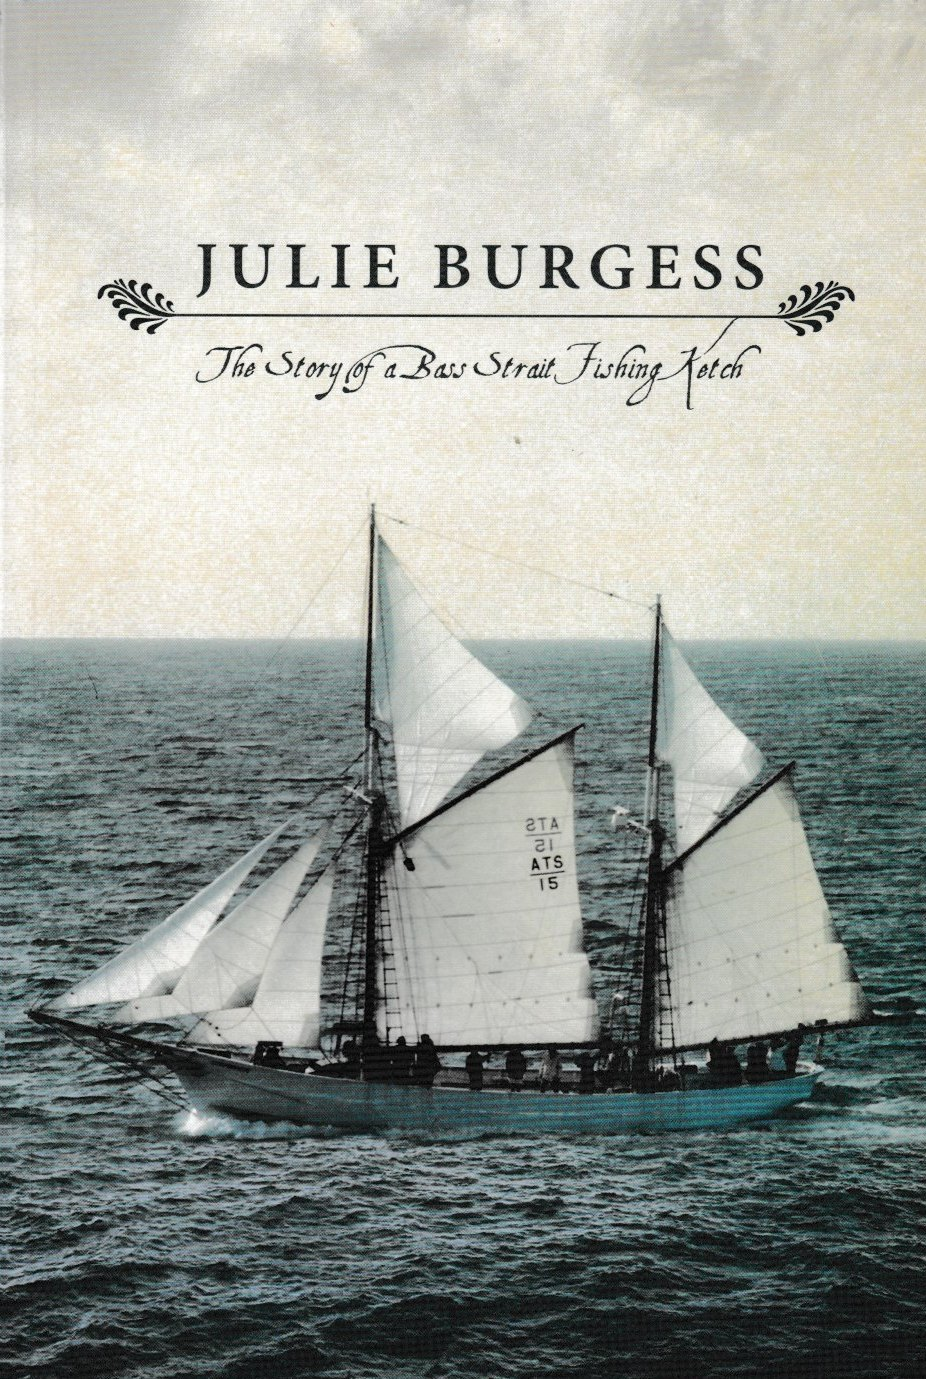 Julie Burgess - the story of a Bass Strait fishing ketch